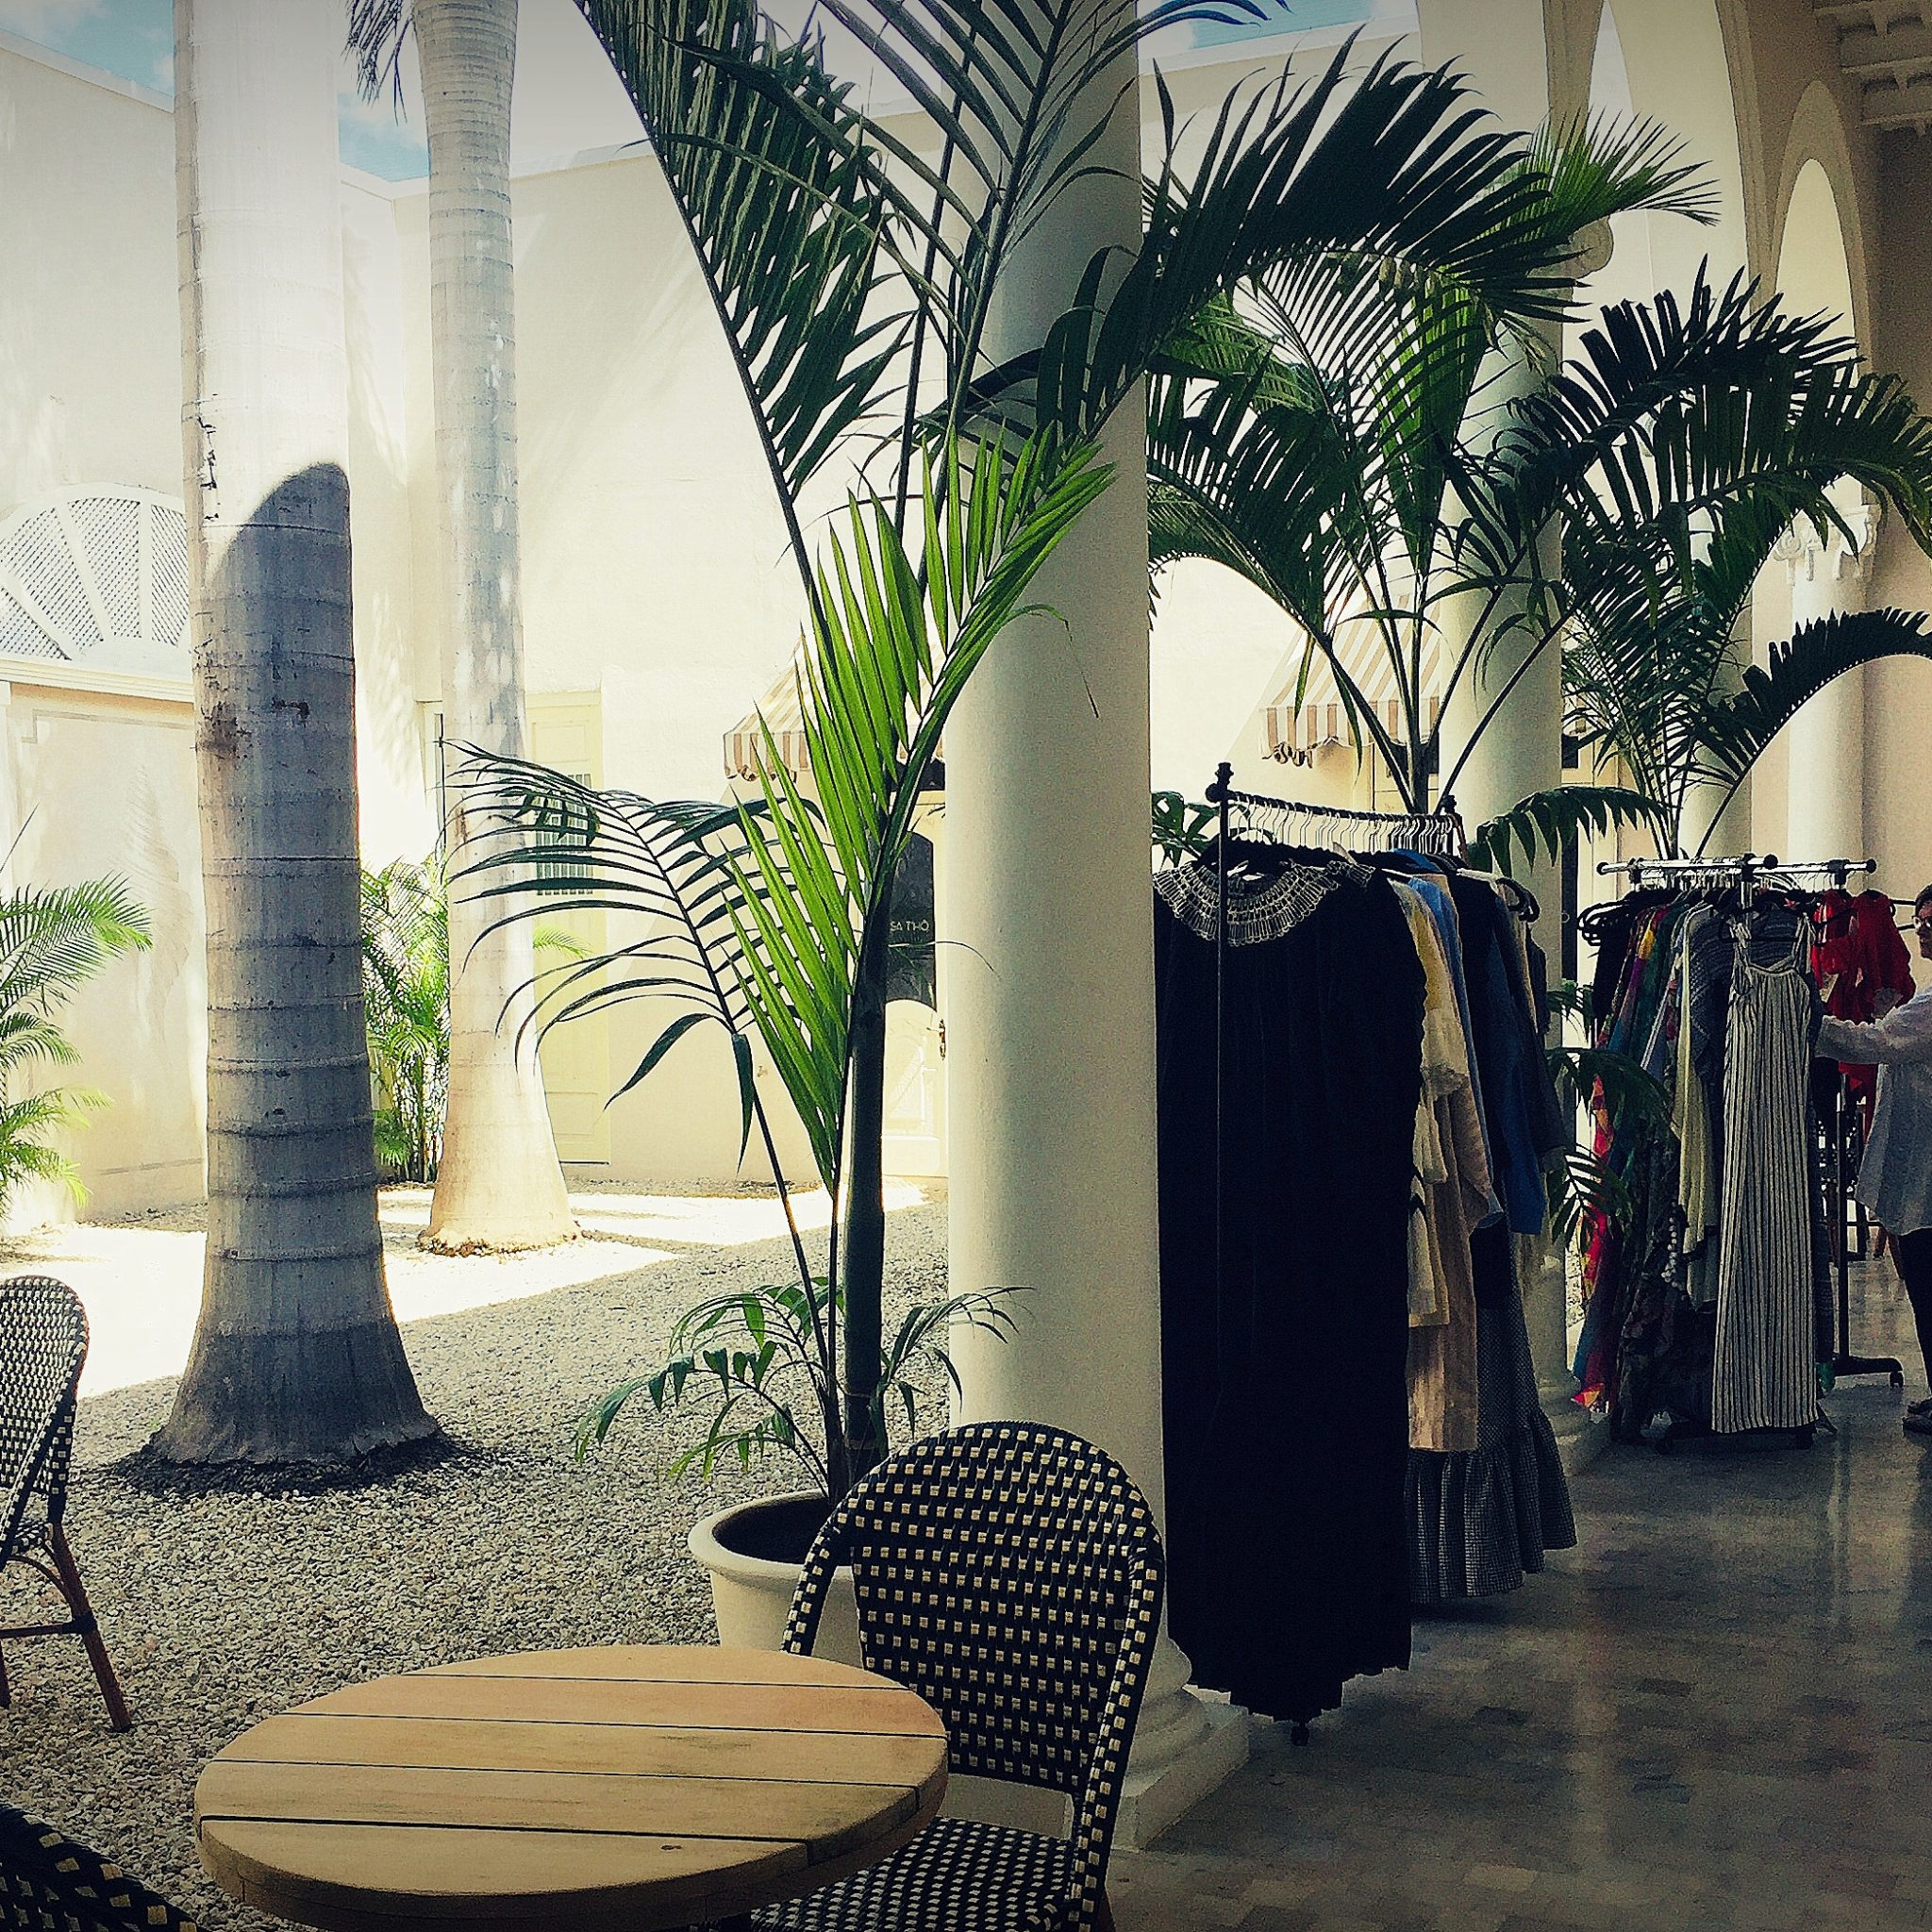 Casa T'hó on Paseo Montejo. Local shops and concept stores are a delight for fashion and interior design lovers alike.